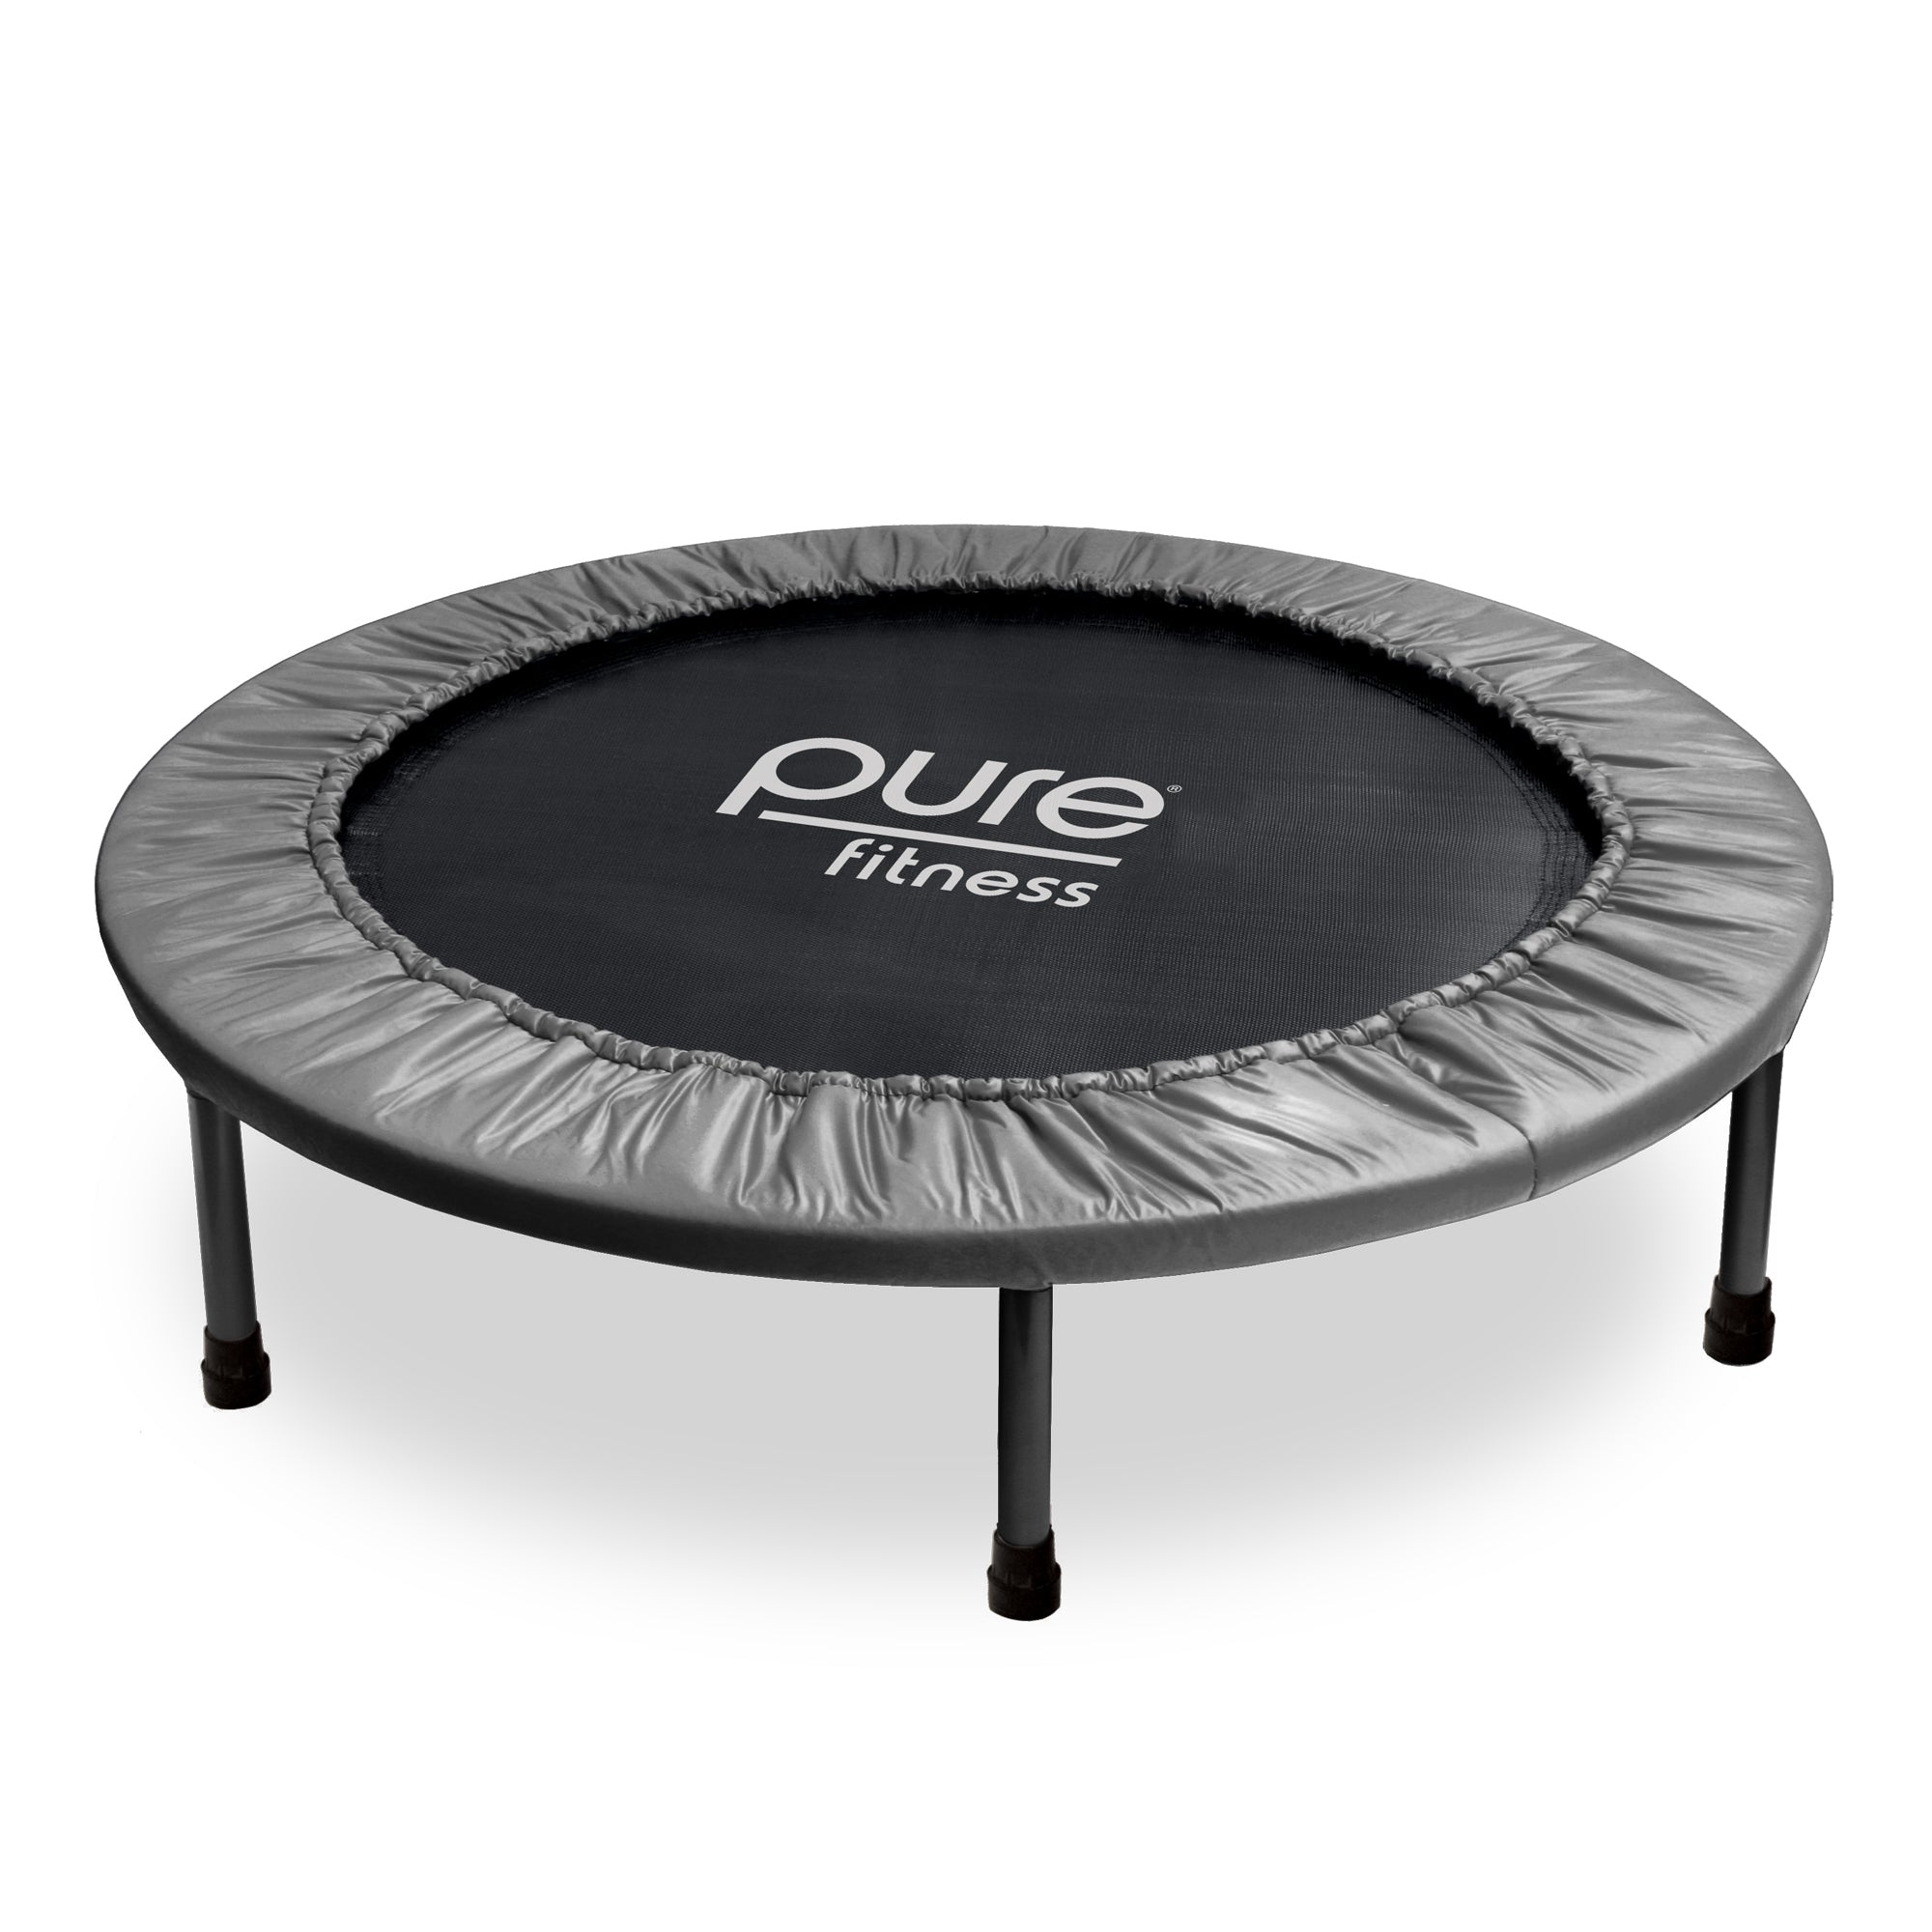 Pure Fitness Exercise Trampoline, 38-inch